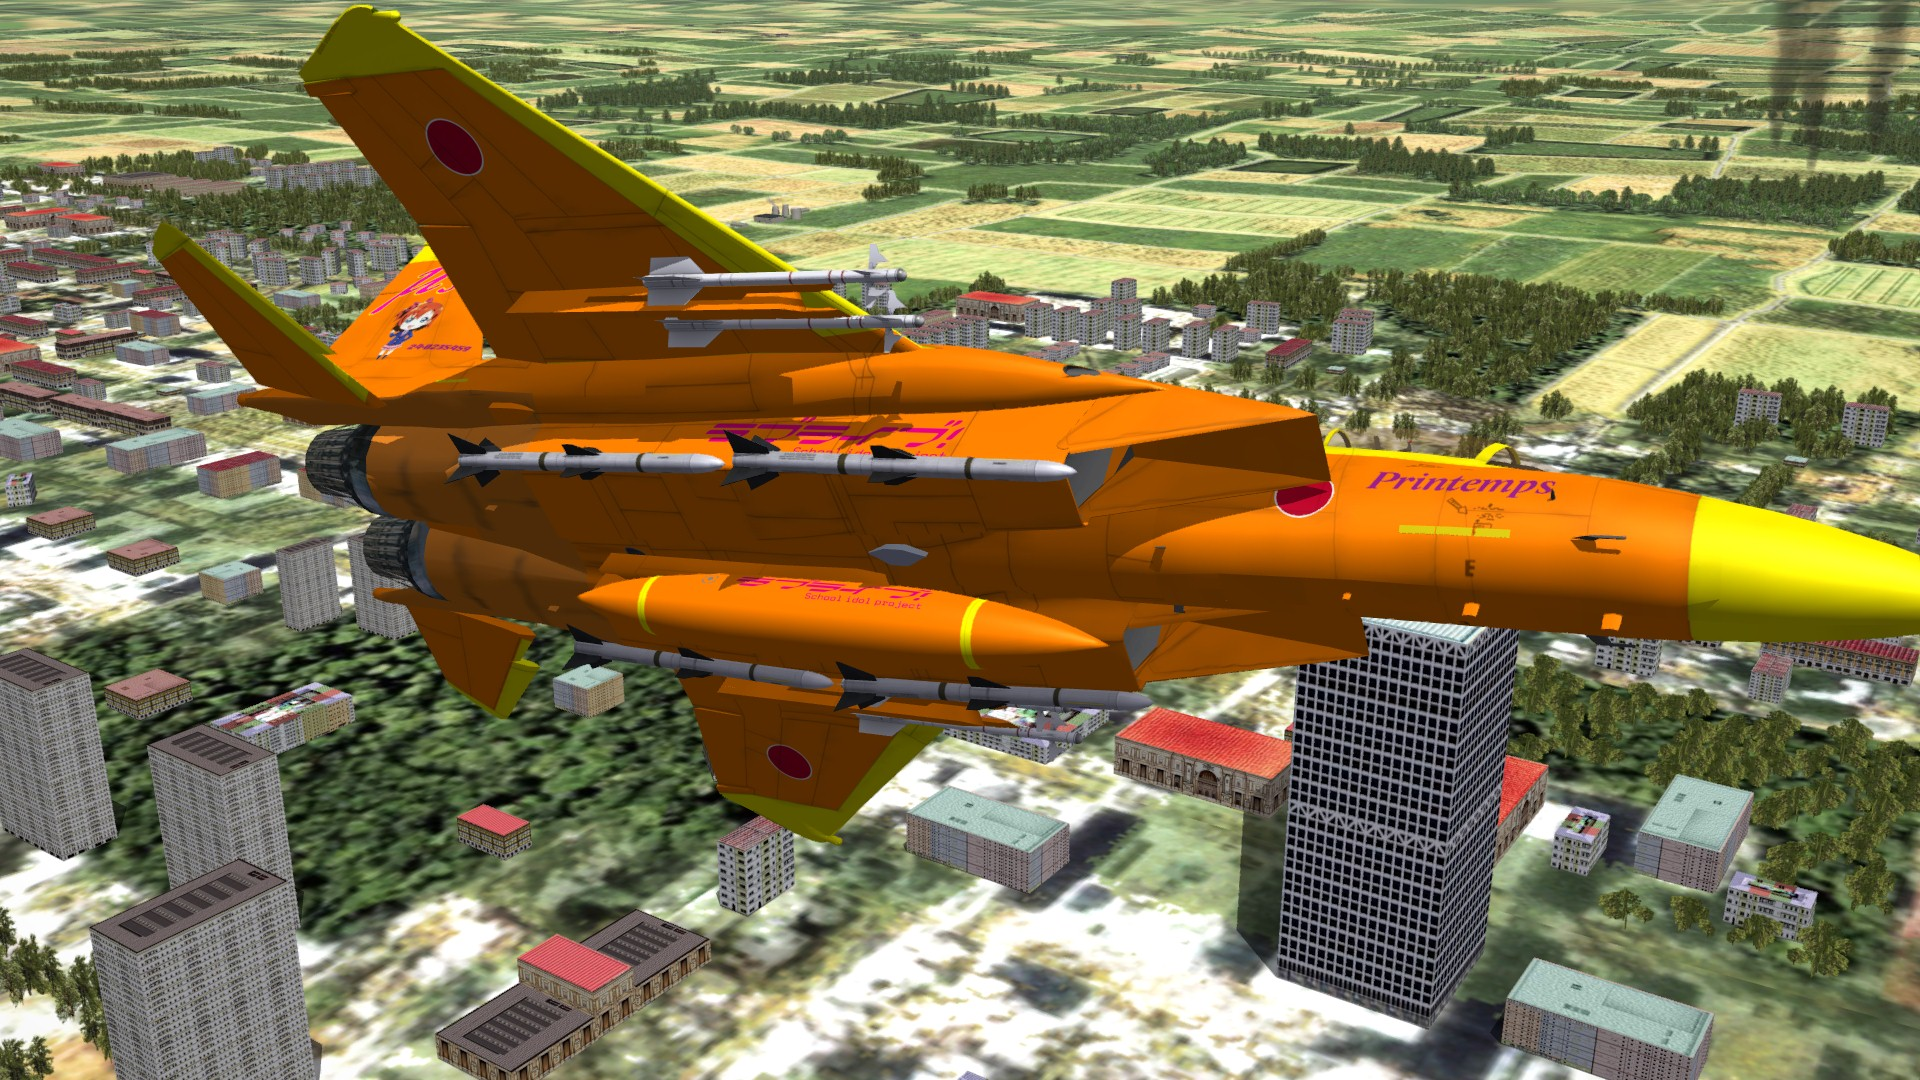 Combat air patrol over the city